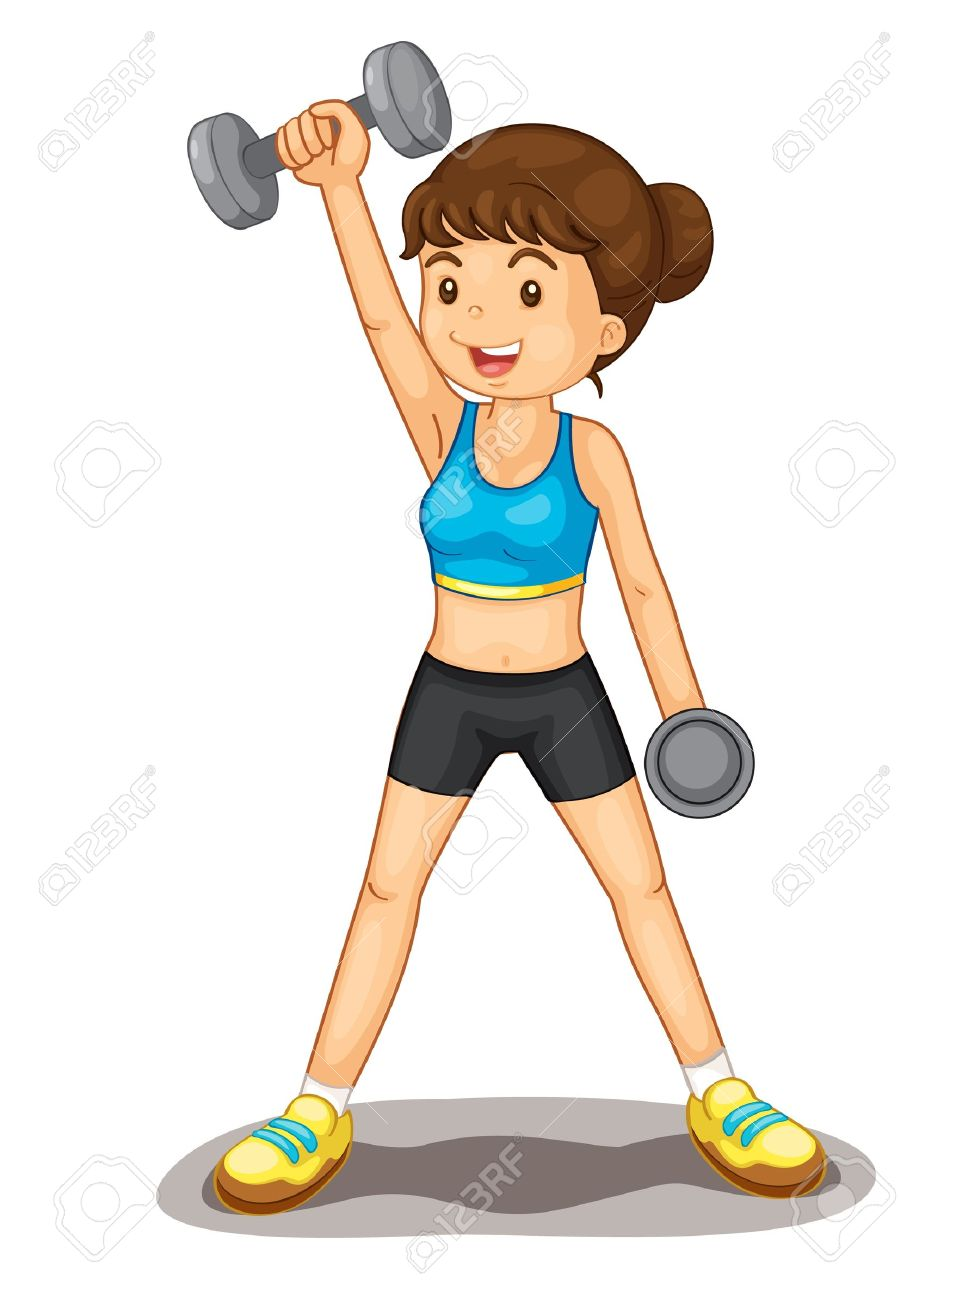 exercise clipart clipart panda free clipart images rh clipartpanda com clipart exercises free clipart exercise equipment